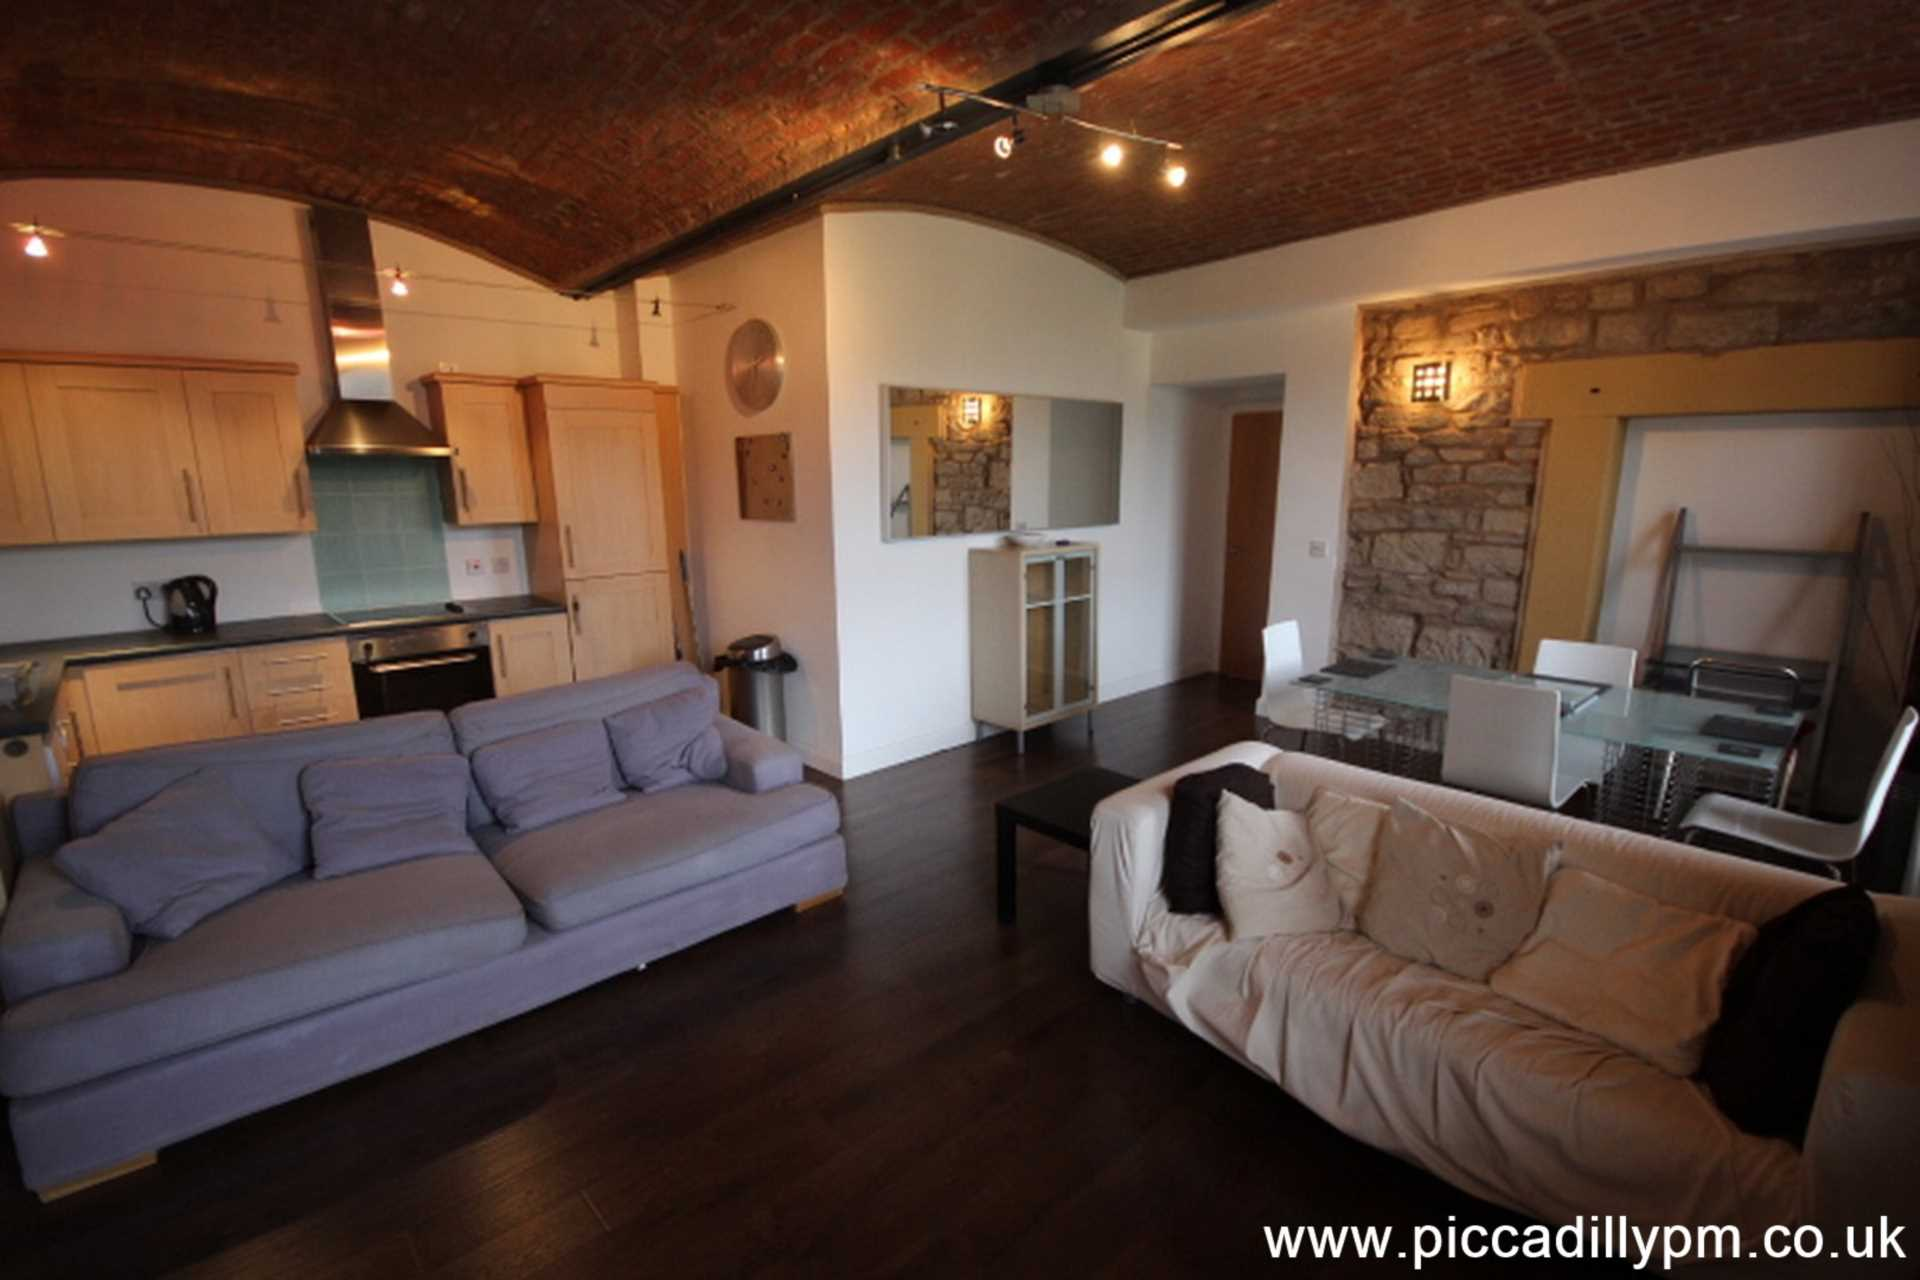 Piccadilly Property Management Ltd - 2 Bedroom Apartment, Albion Mill, Wedneshough Green, Hollingworth, Hyde, SK14 8LS